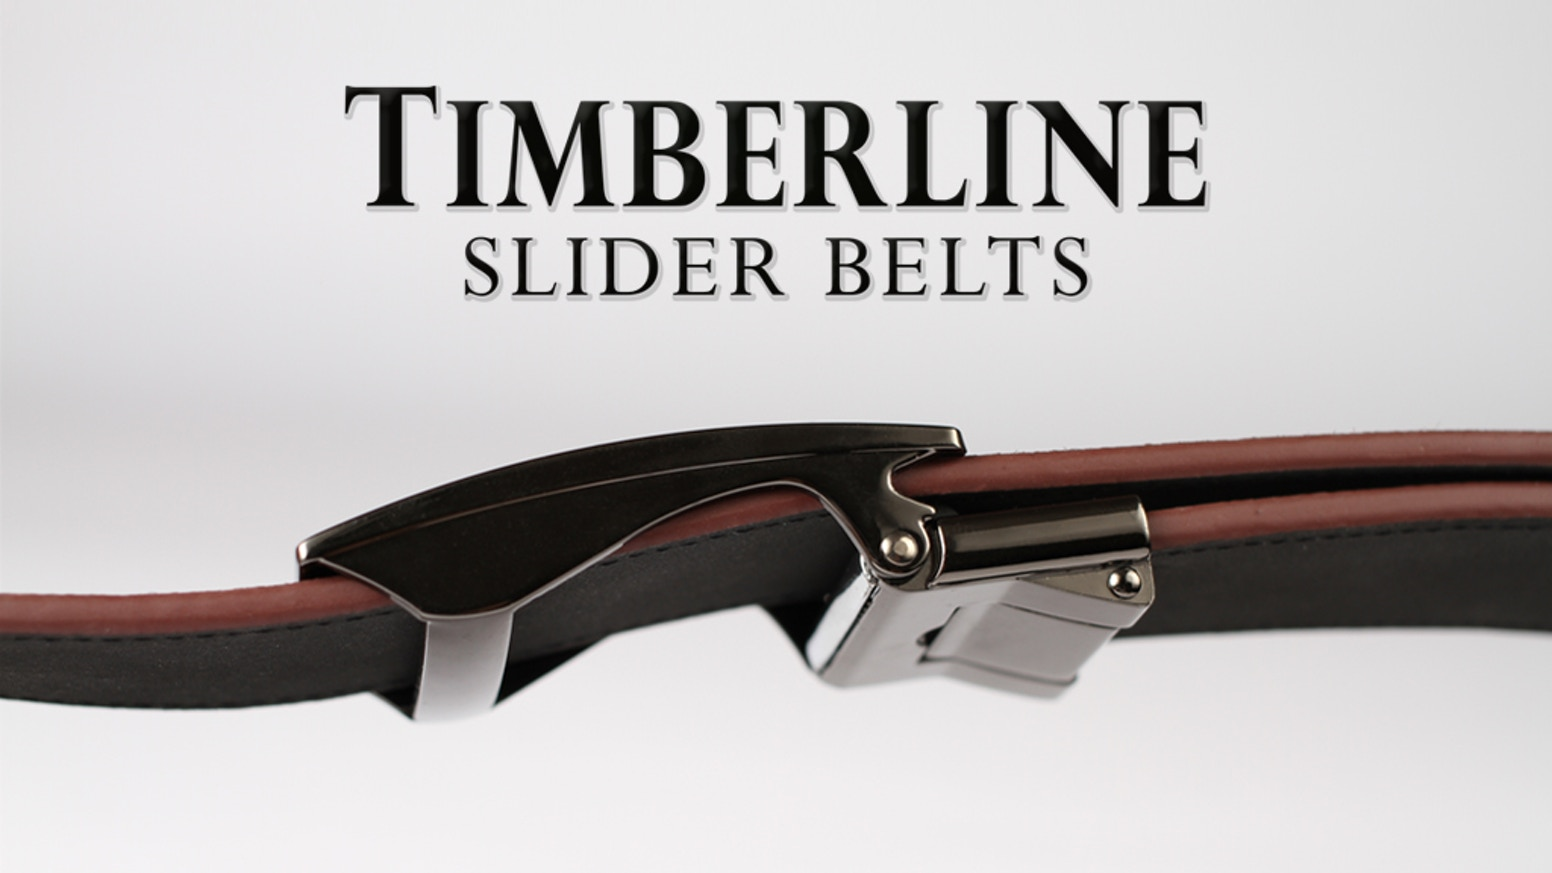 Timberline Slider Belts offer limitless adjustment options for maximum comfort and style.